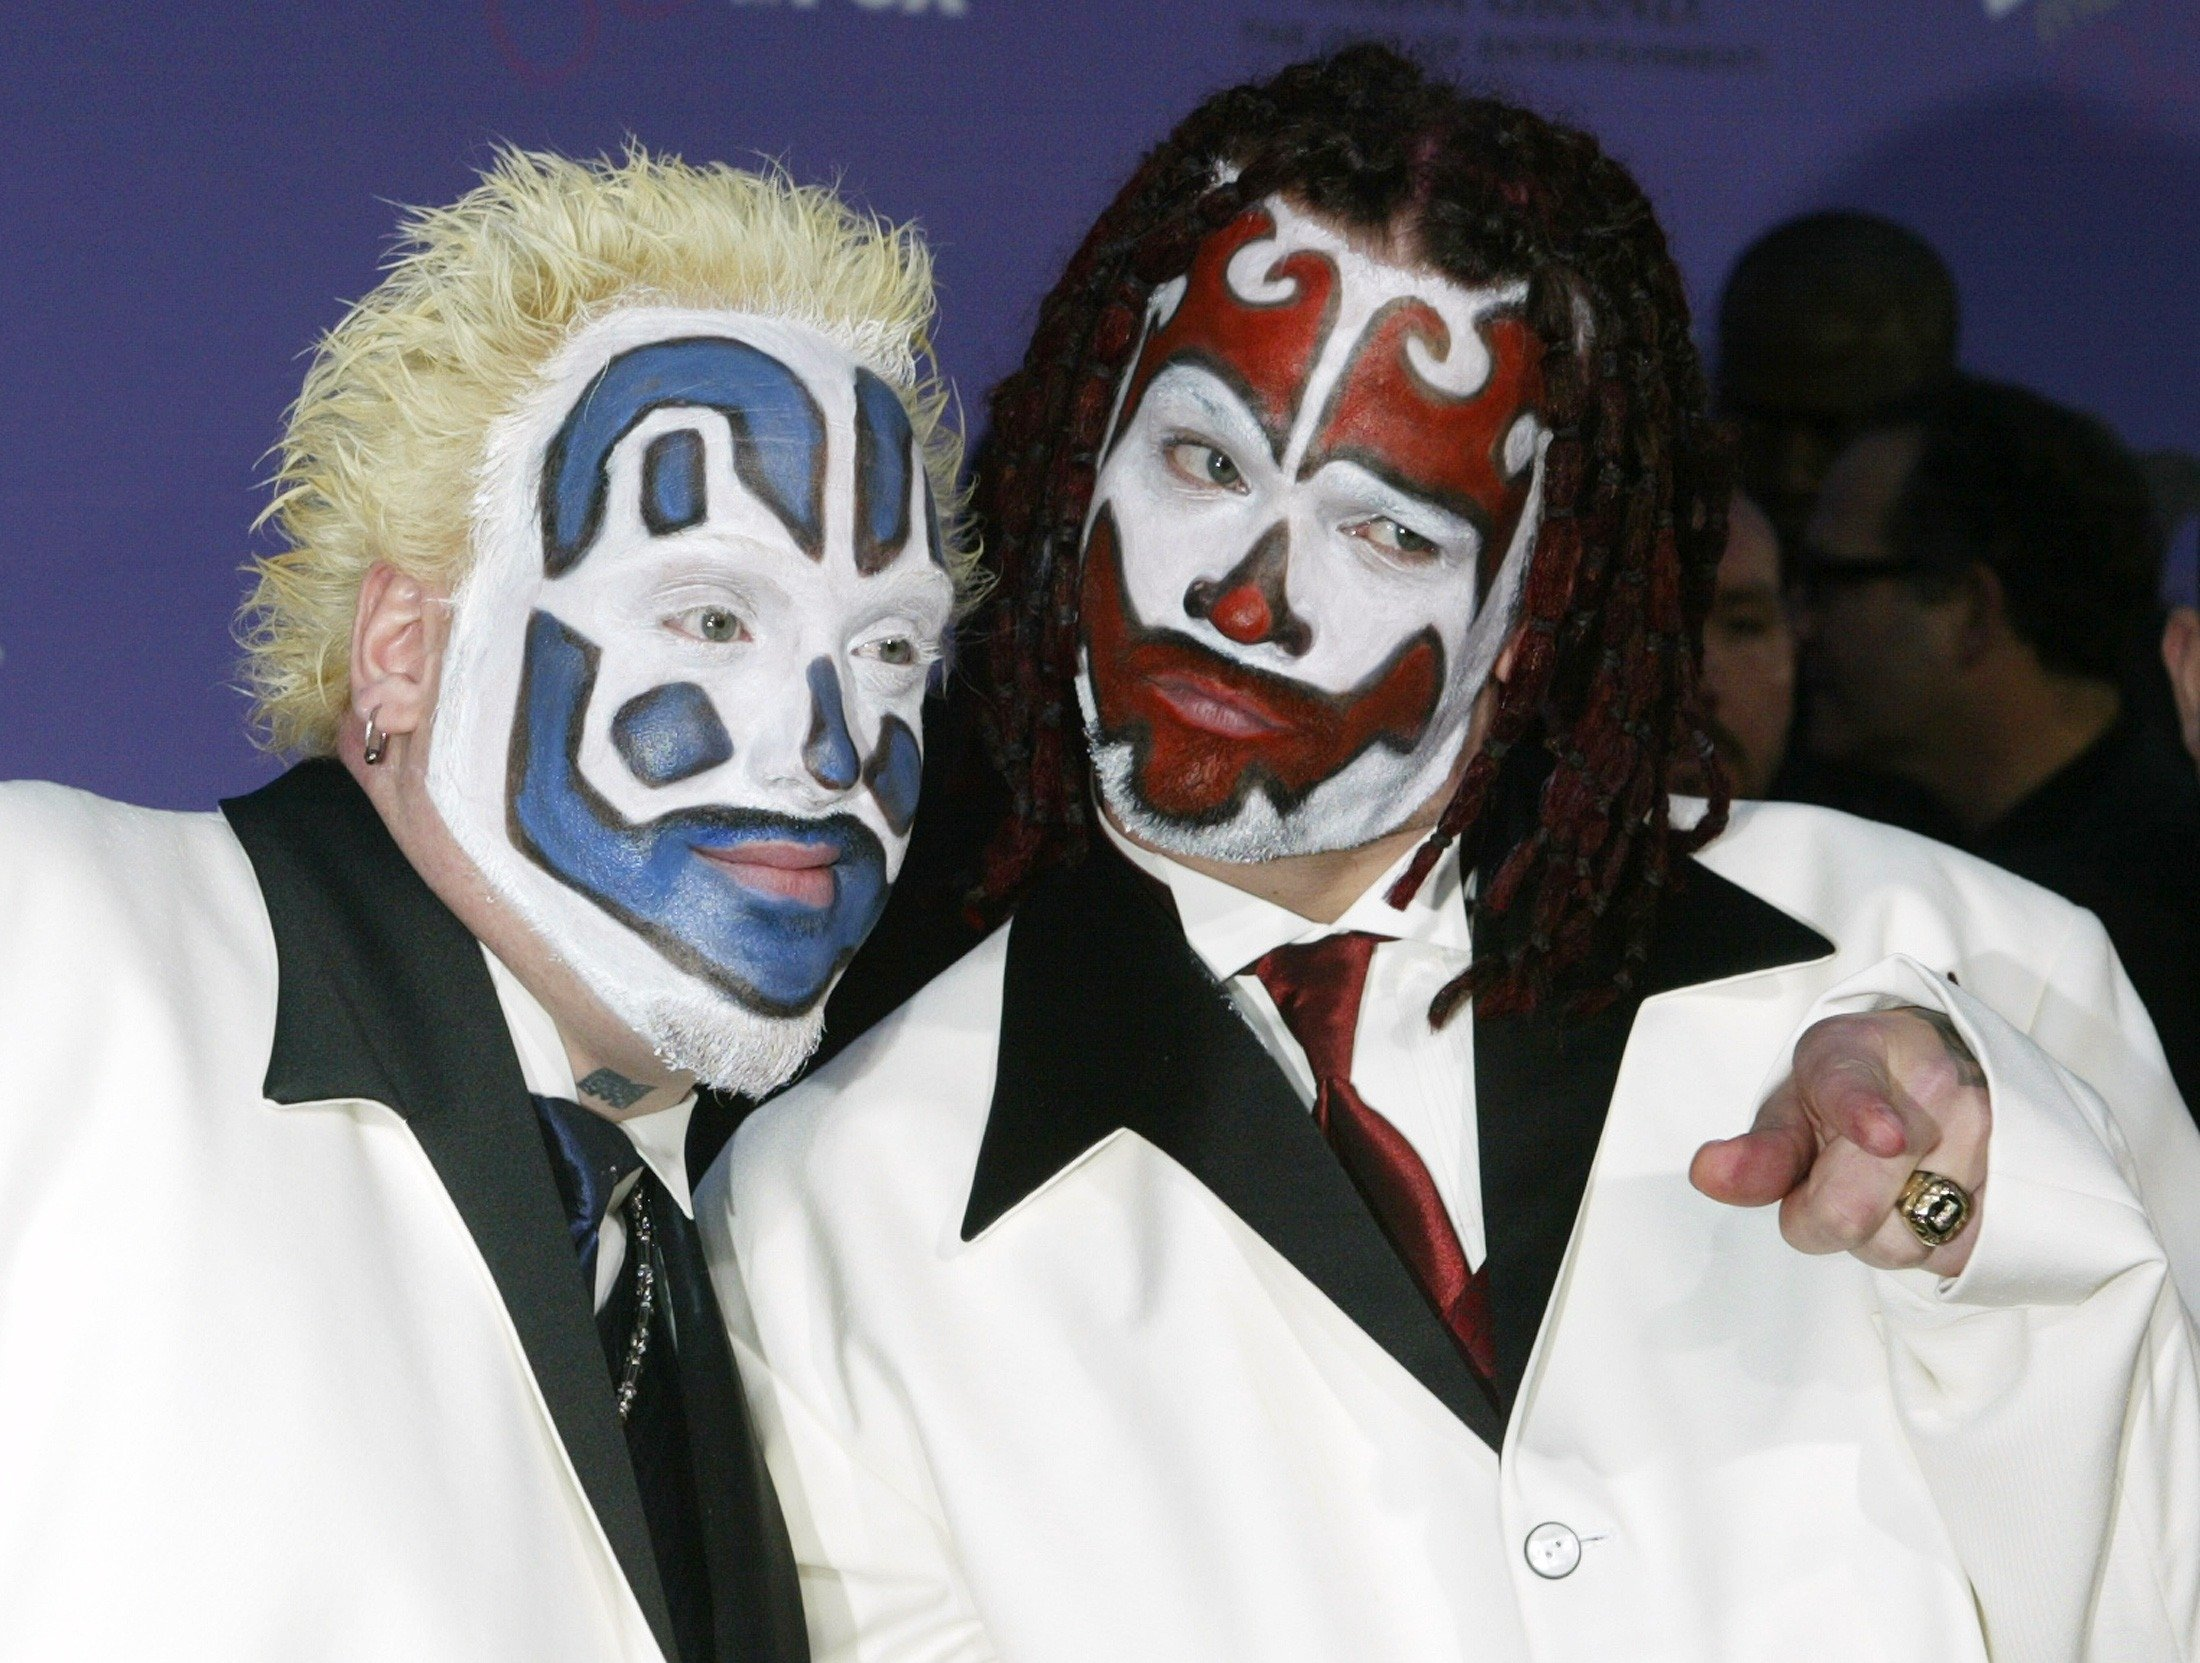 Just-a-Juggalo?-Insane-Clown-Posse-Fans-to-Protest-Gang-Label